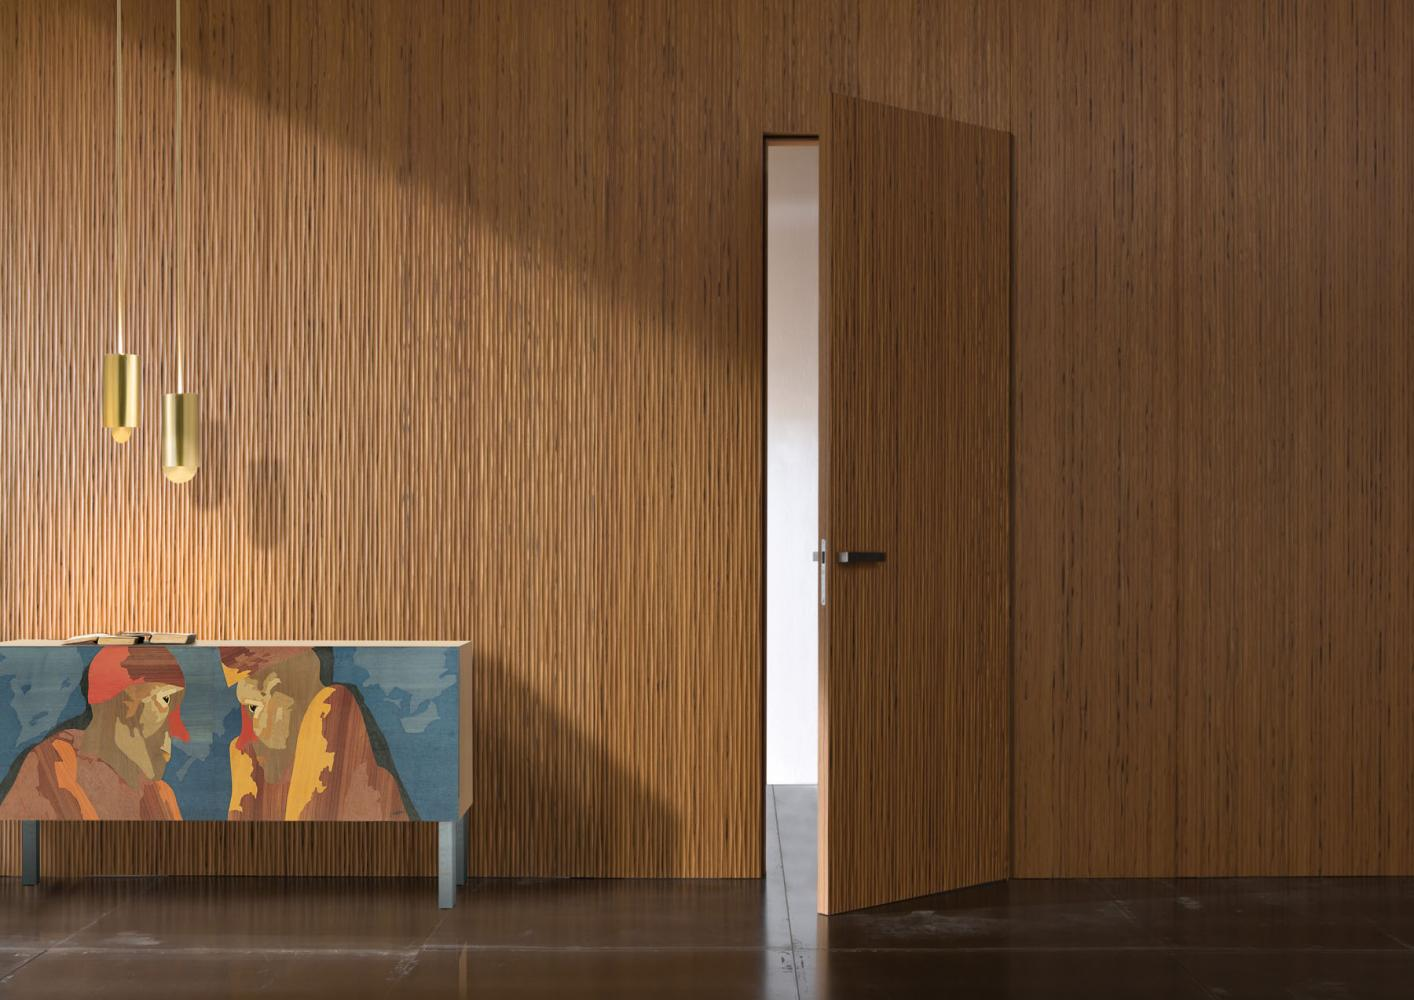 Modern limited edition sideboard in wood with inlays designed by Emilio Tadini for luxury home.